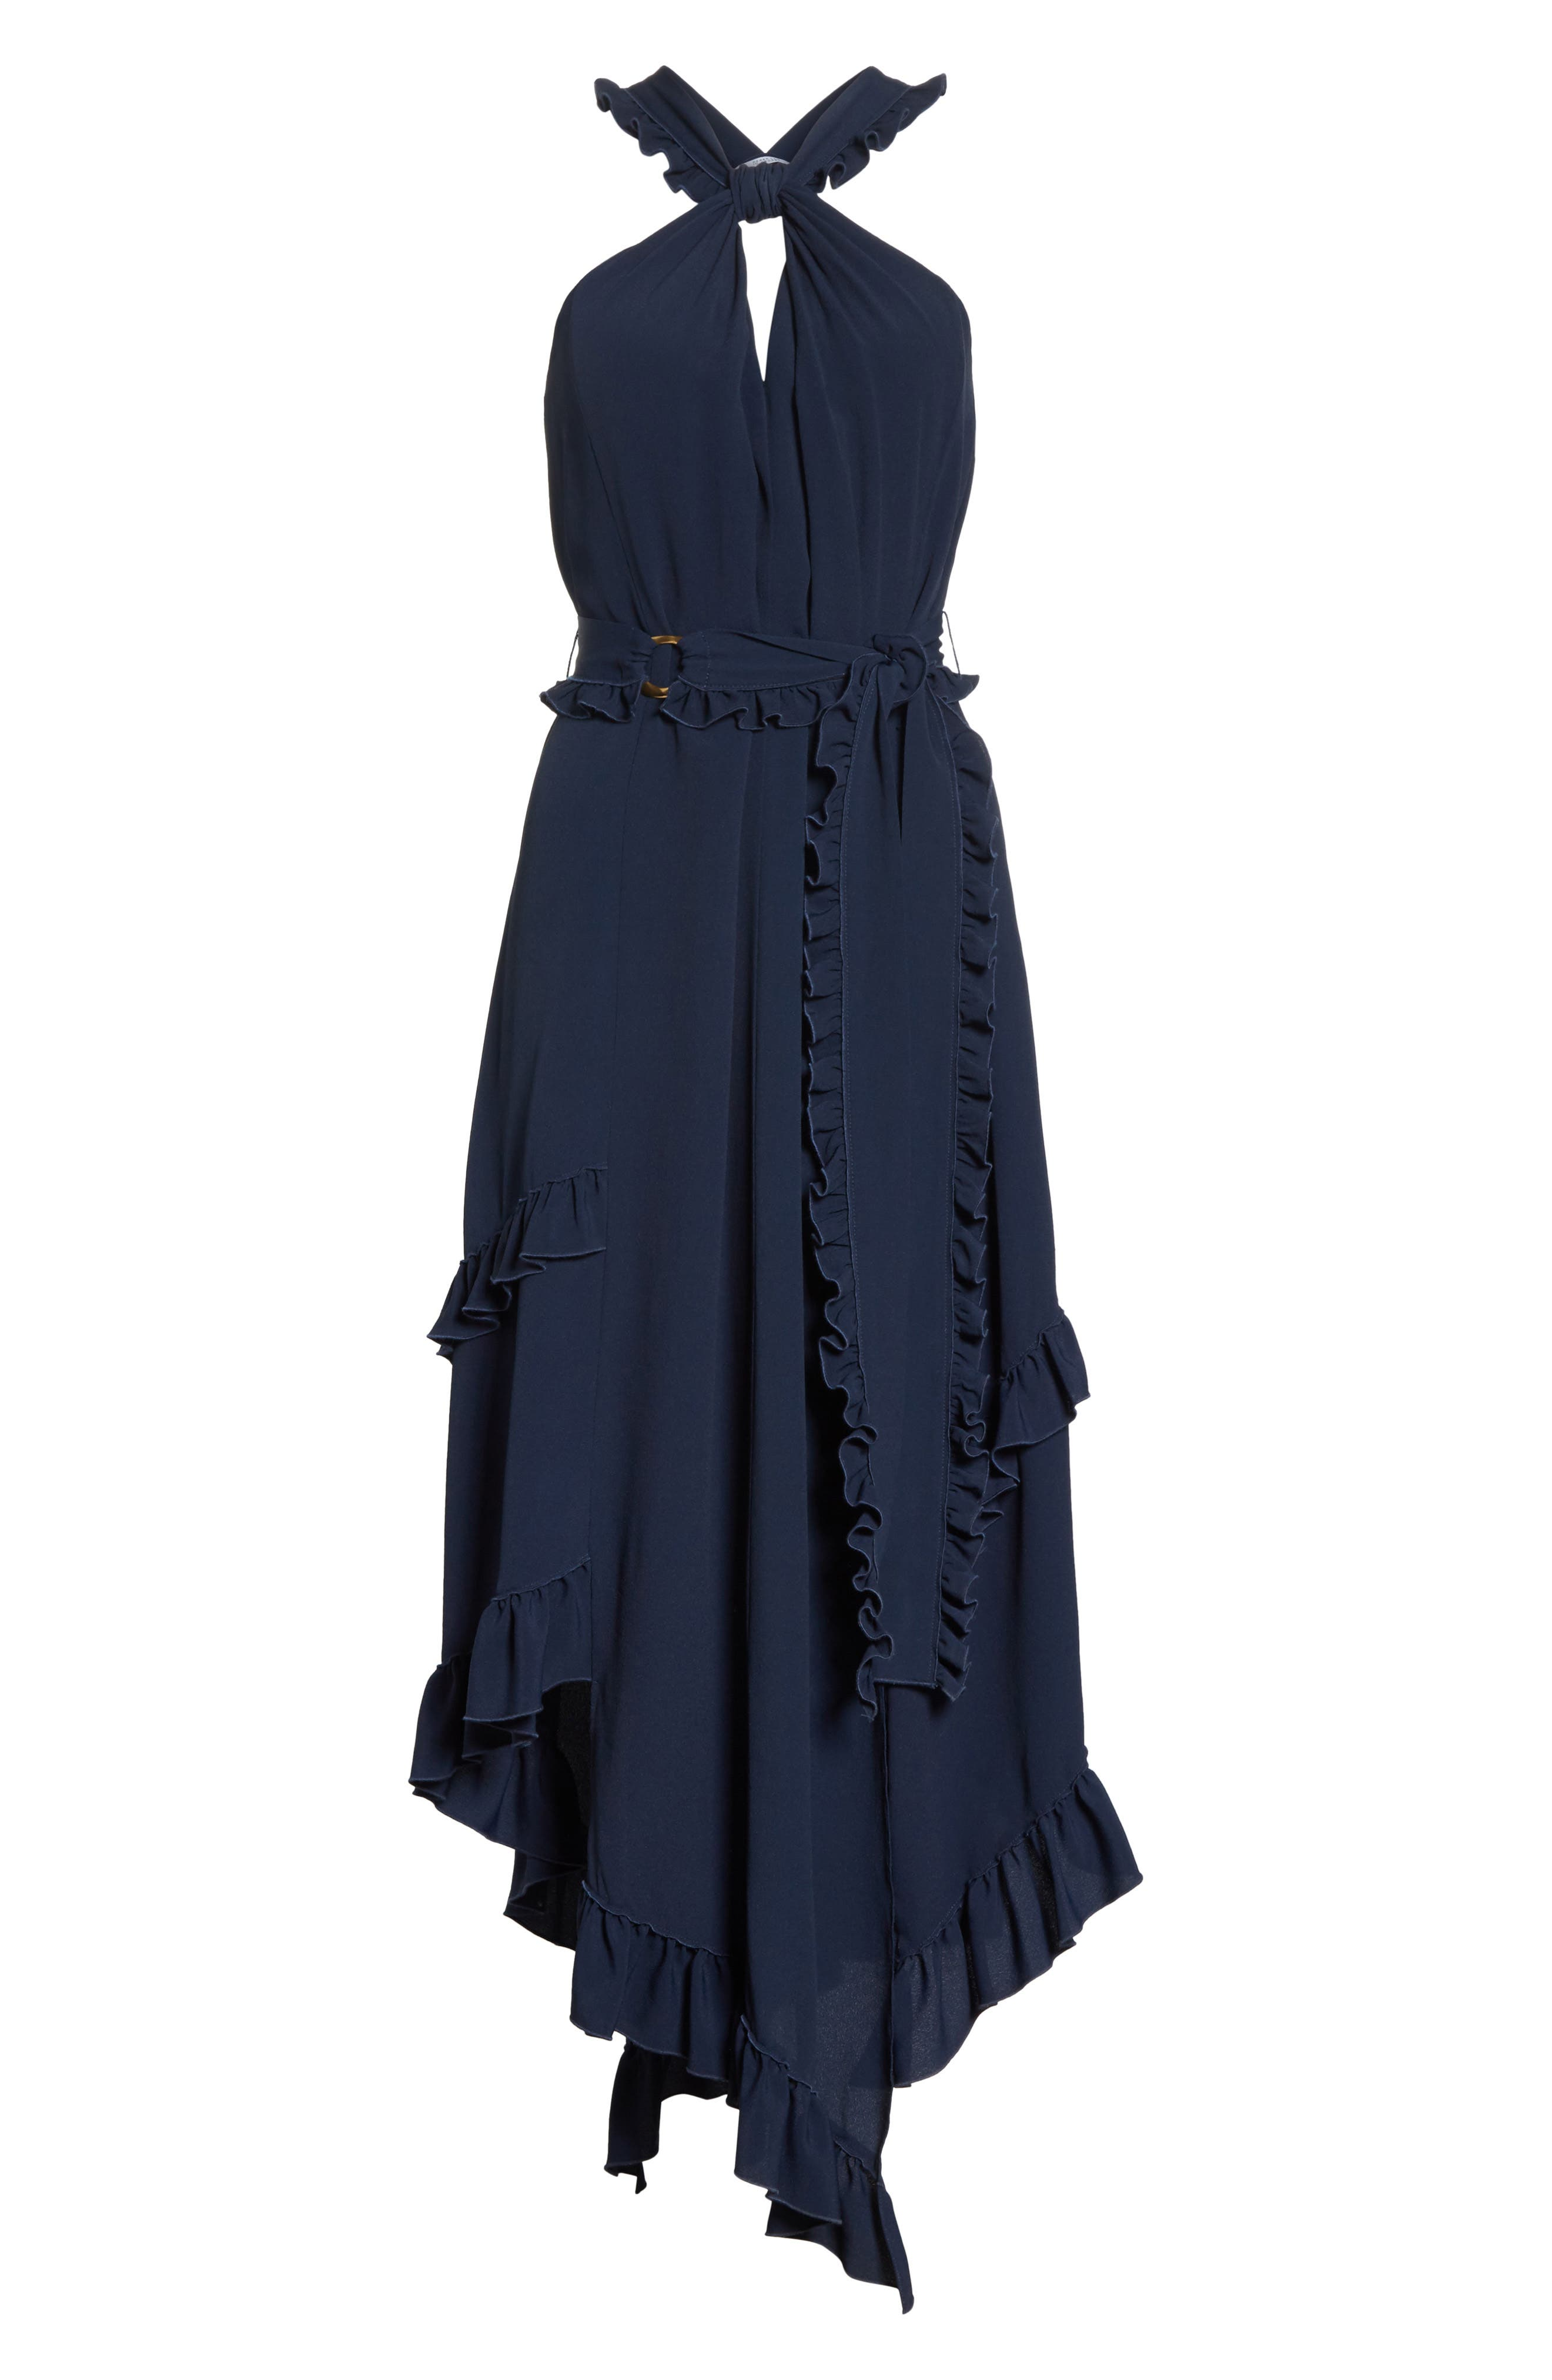 Ruffled Asymmetrical Dress,                             Alternate thumbnail 6, color,                             Midnight